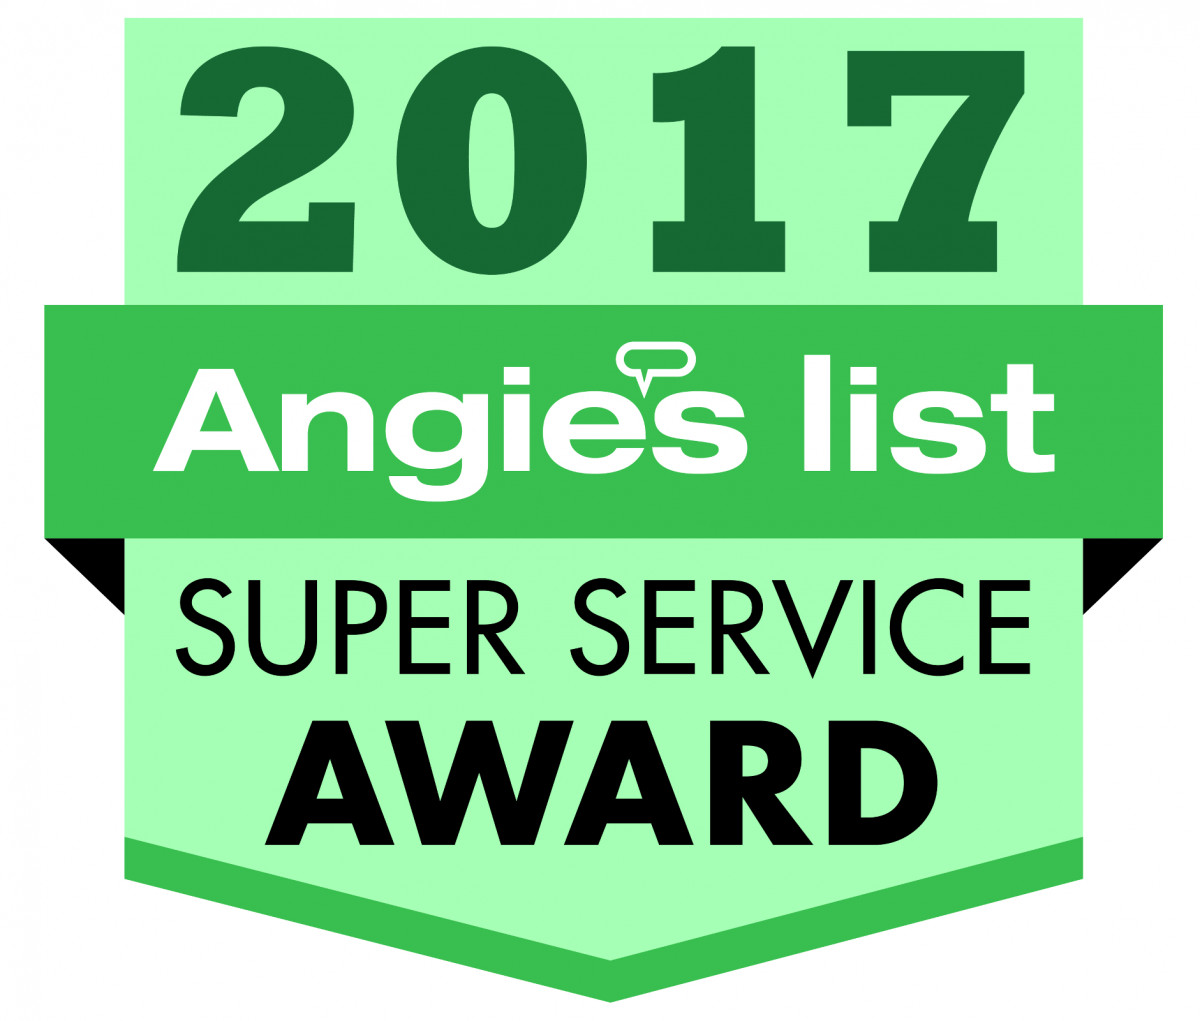 Sky Power Wash were awarded the 2017 Super Service Award from Angie's List